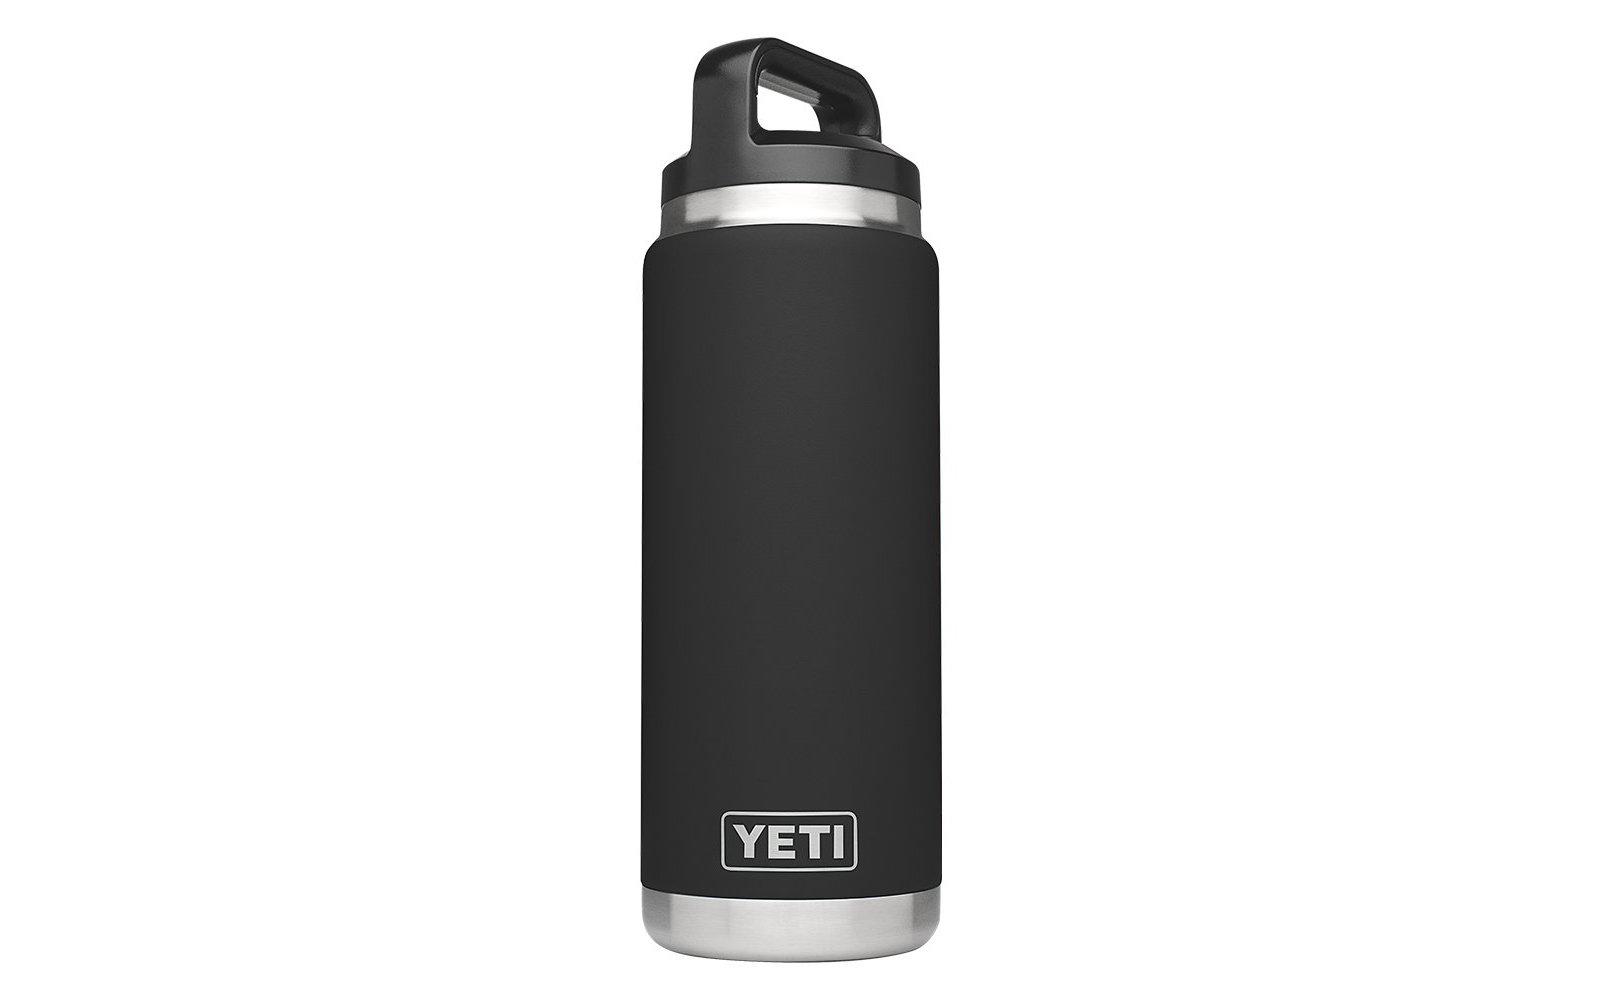 YETI Rambler 26oz Vacuum Insulated Stainless Steel Bottle with Cap